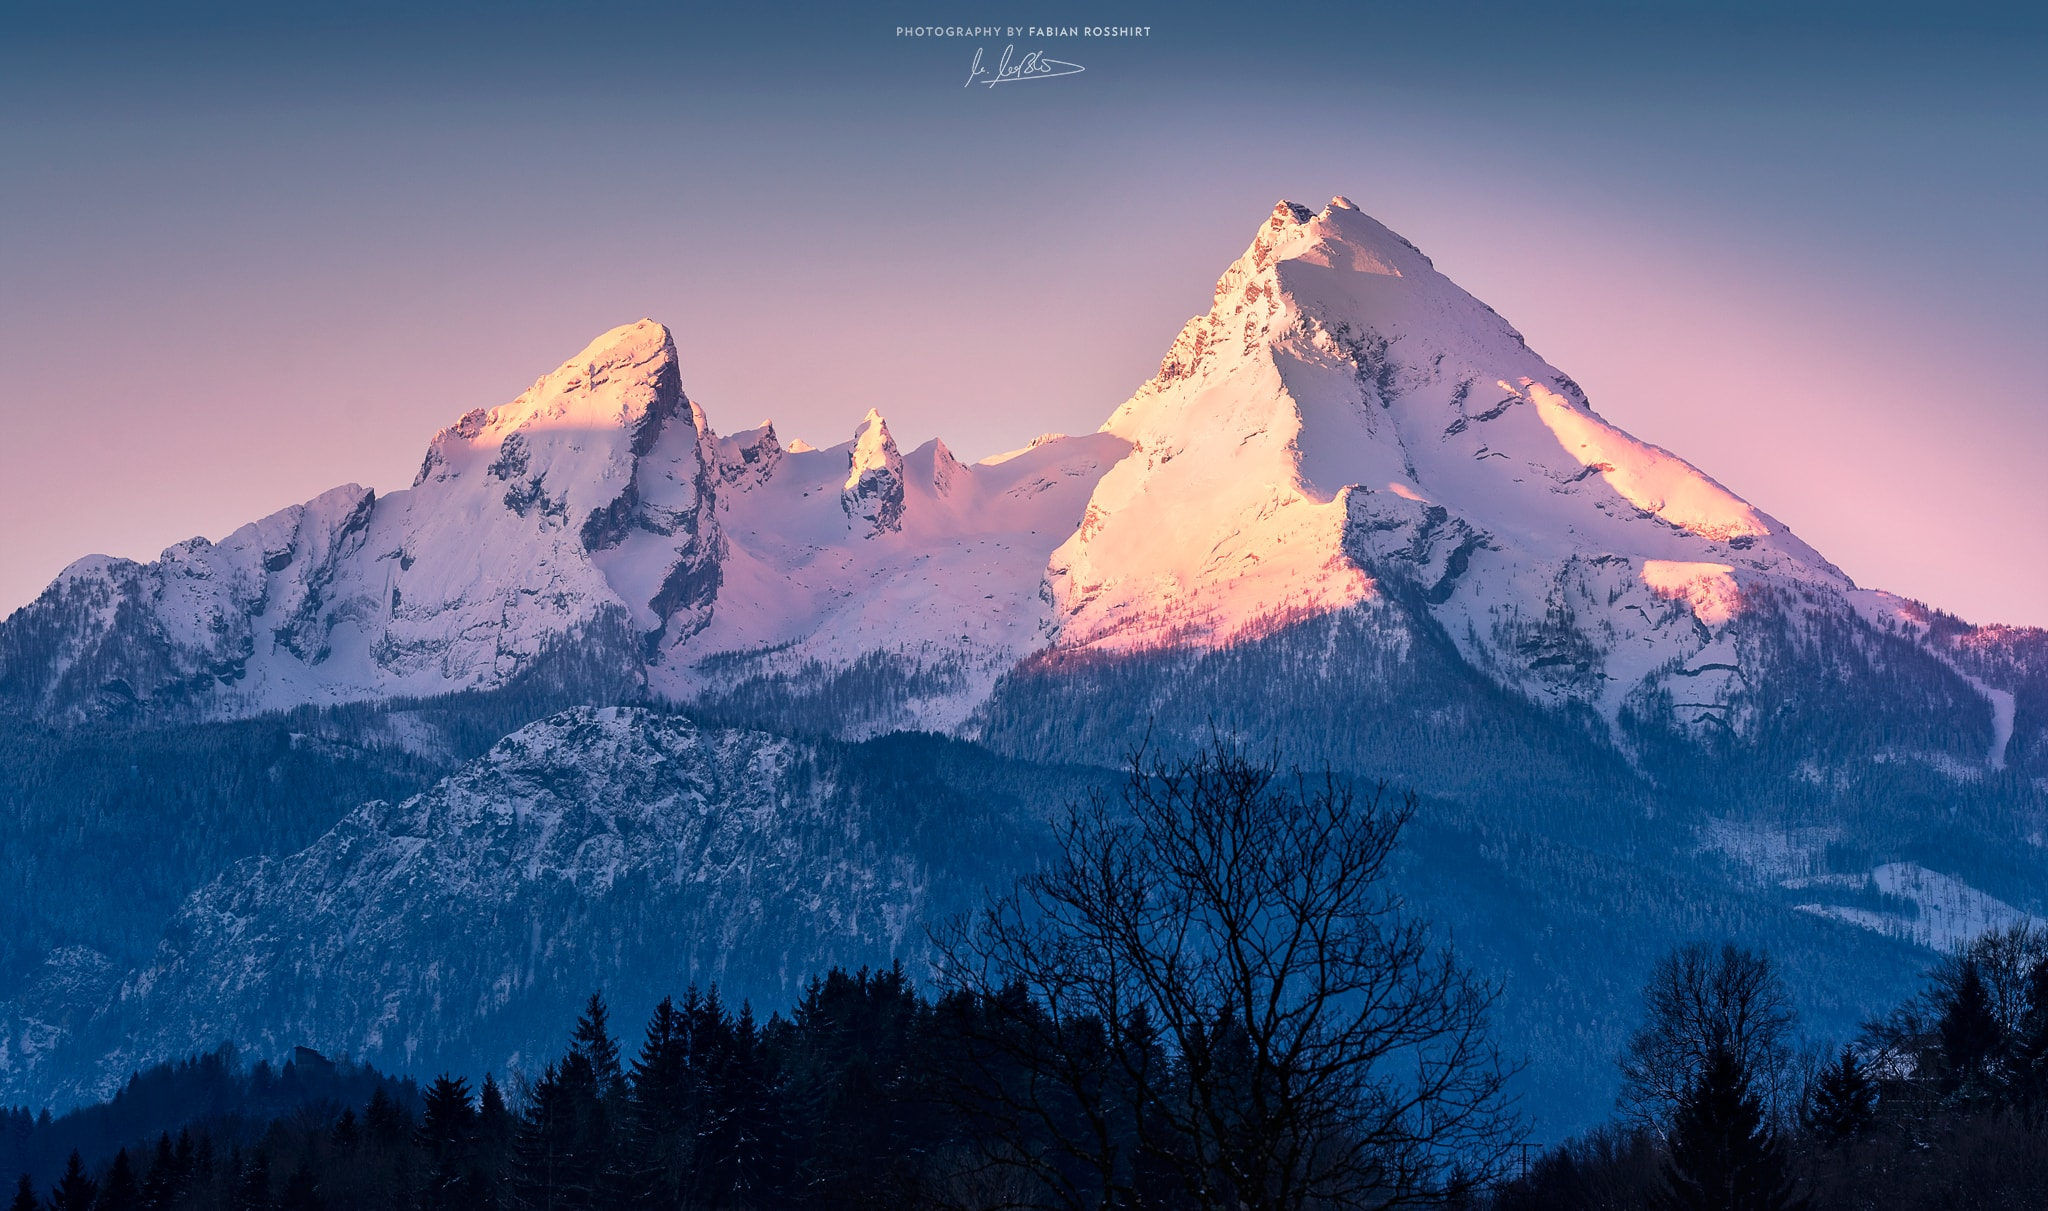 Watzmann, Berg, Sonne, Licht, Sonnenaufgang, Pink, Morgen, Morning, Mountain, Ridge, Sun, Light, MAJESTY (Berchtesgaden Wallpaper HD Bilder Hintergrundbild Background)